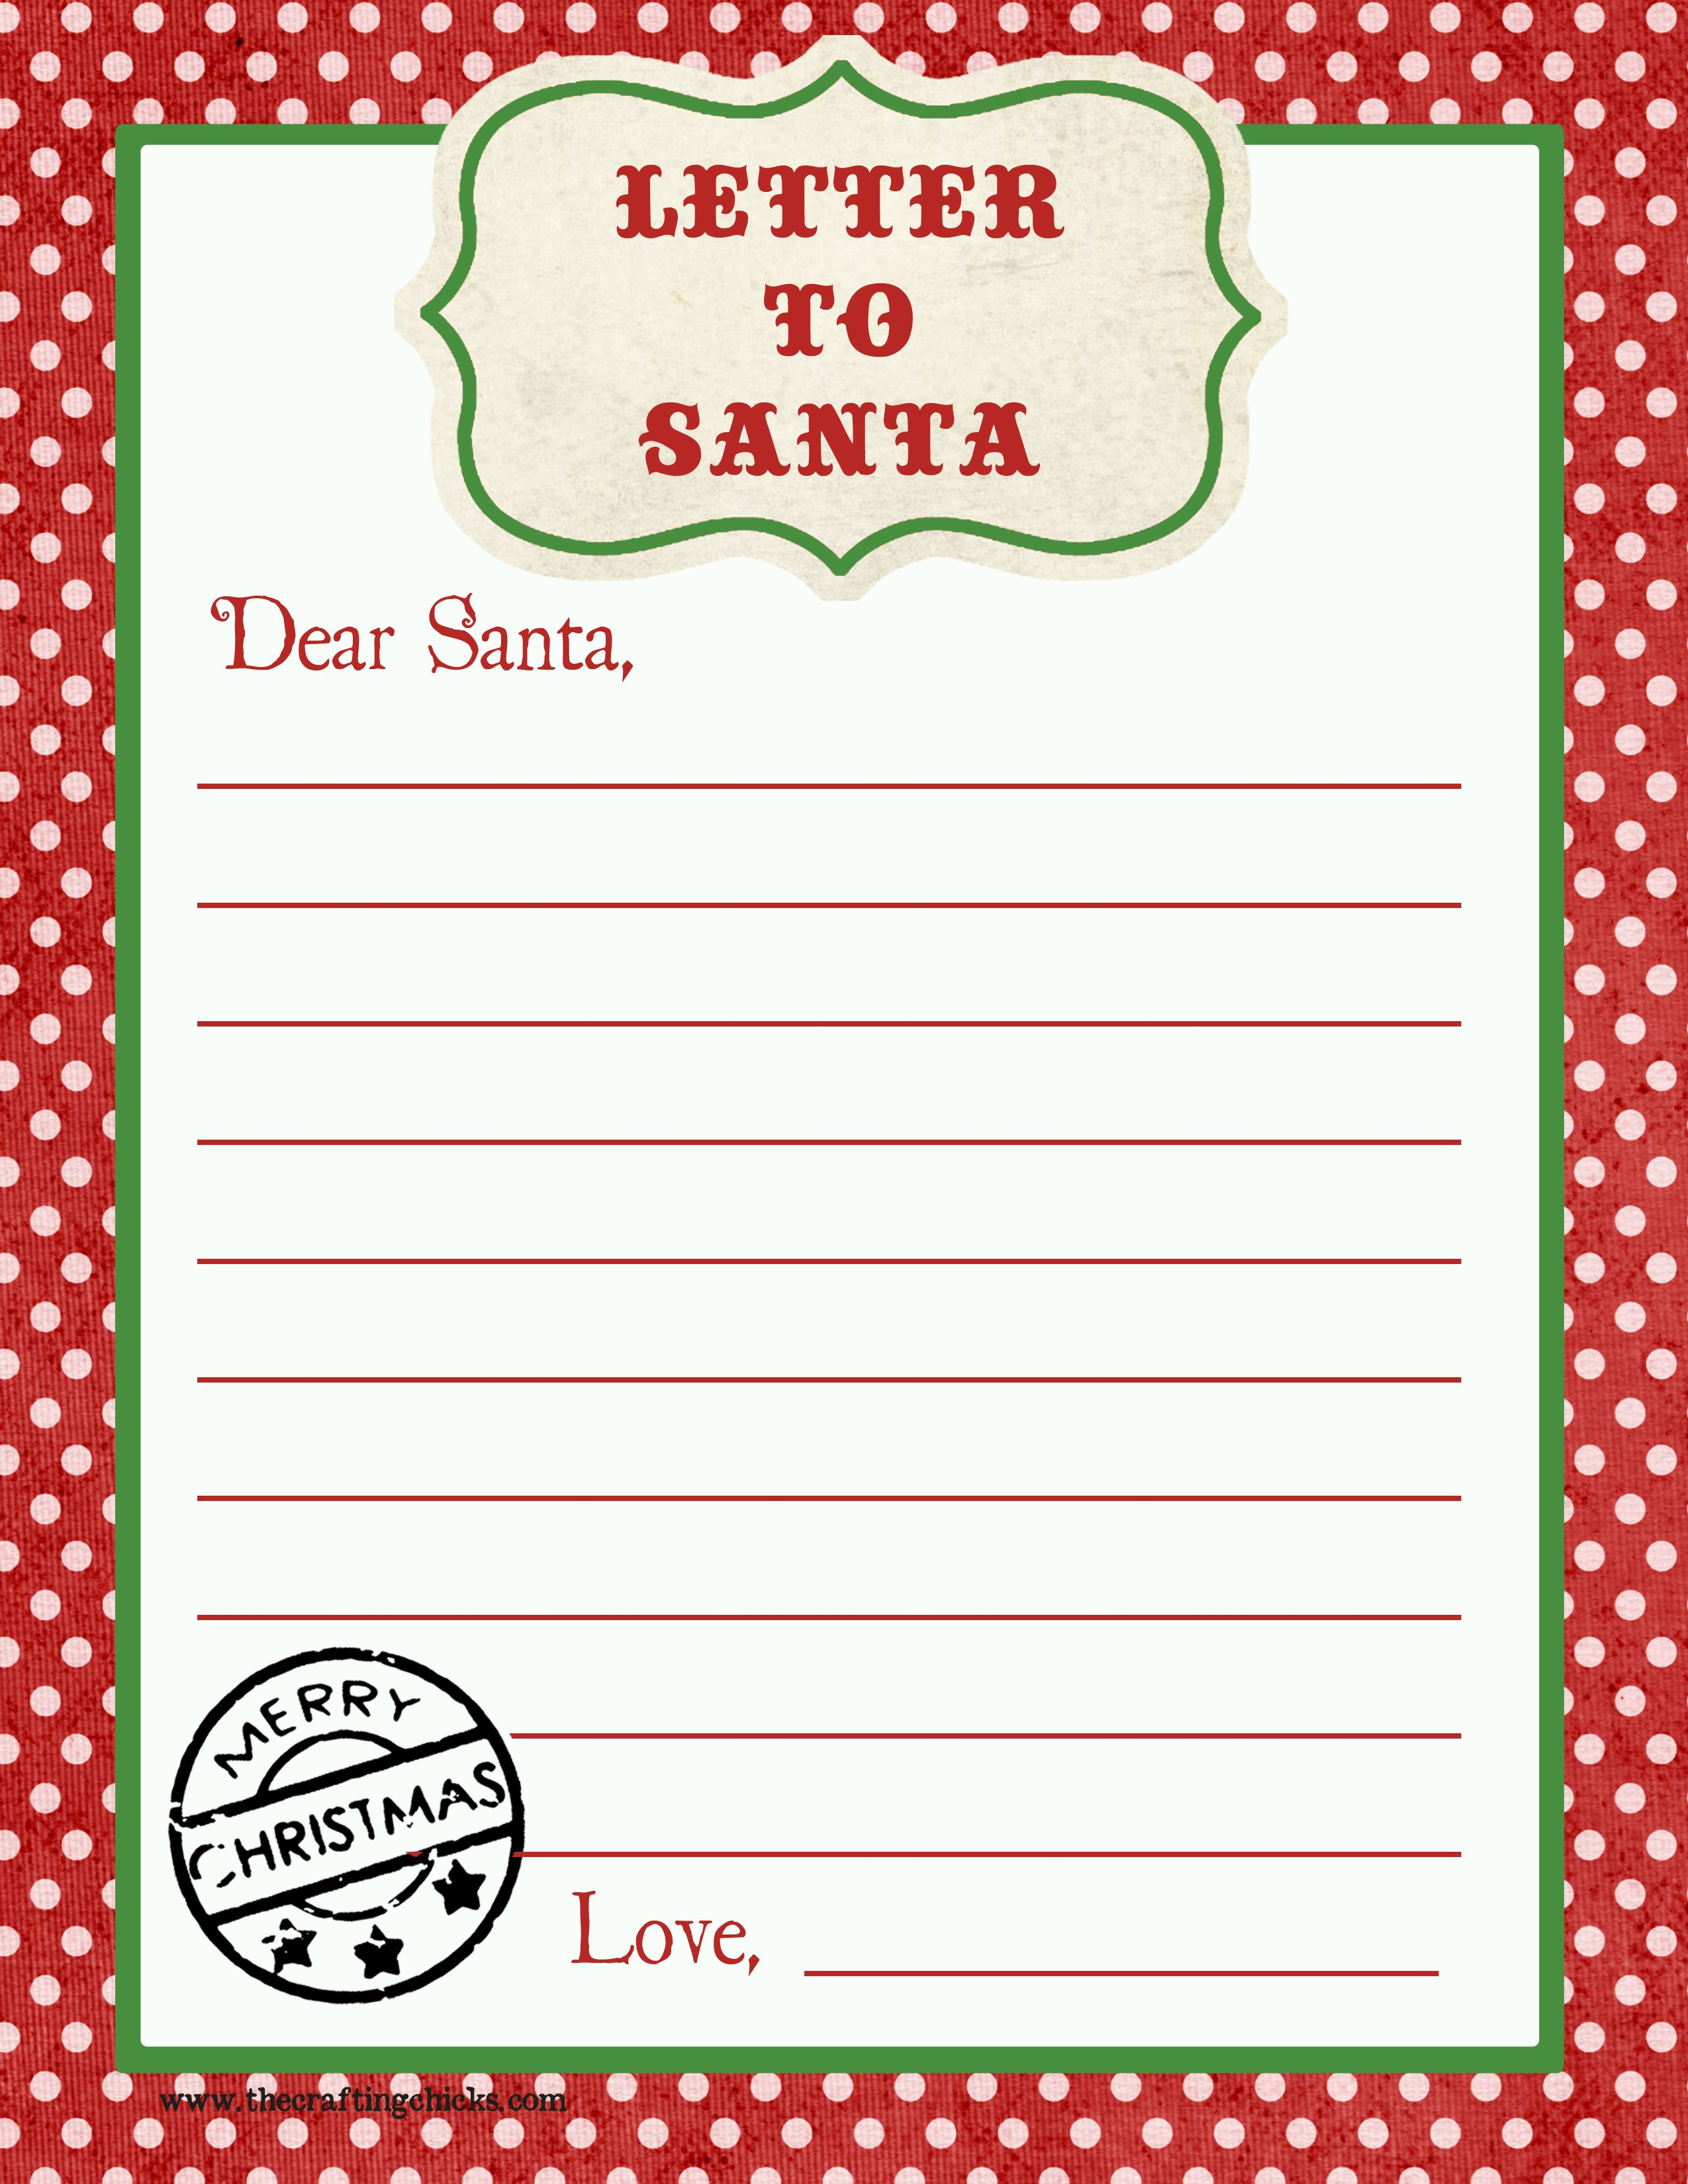 Dear Santa Letter Template - Letter to Santa Free Printable Download